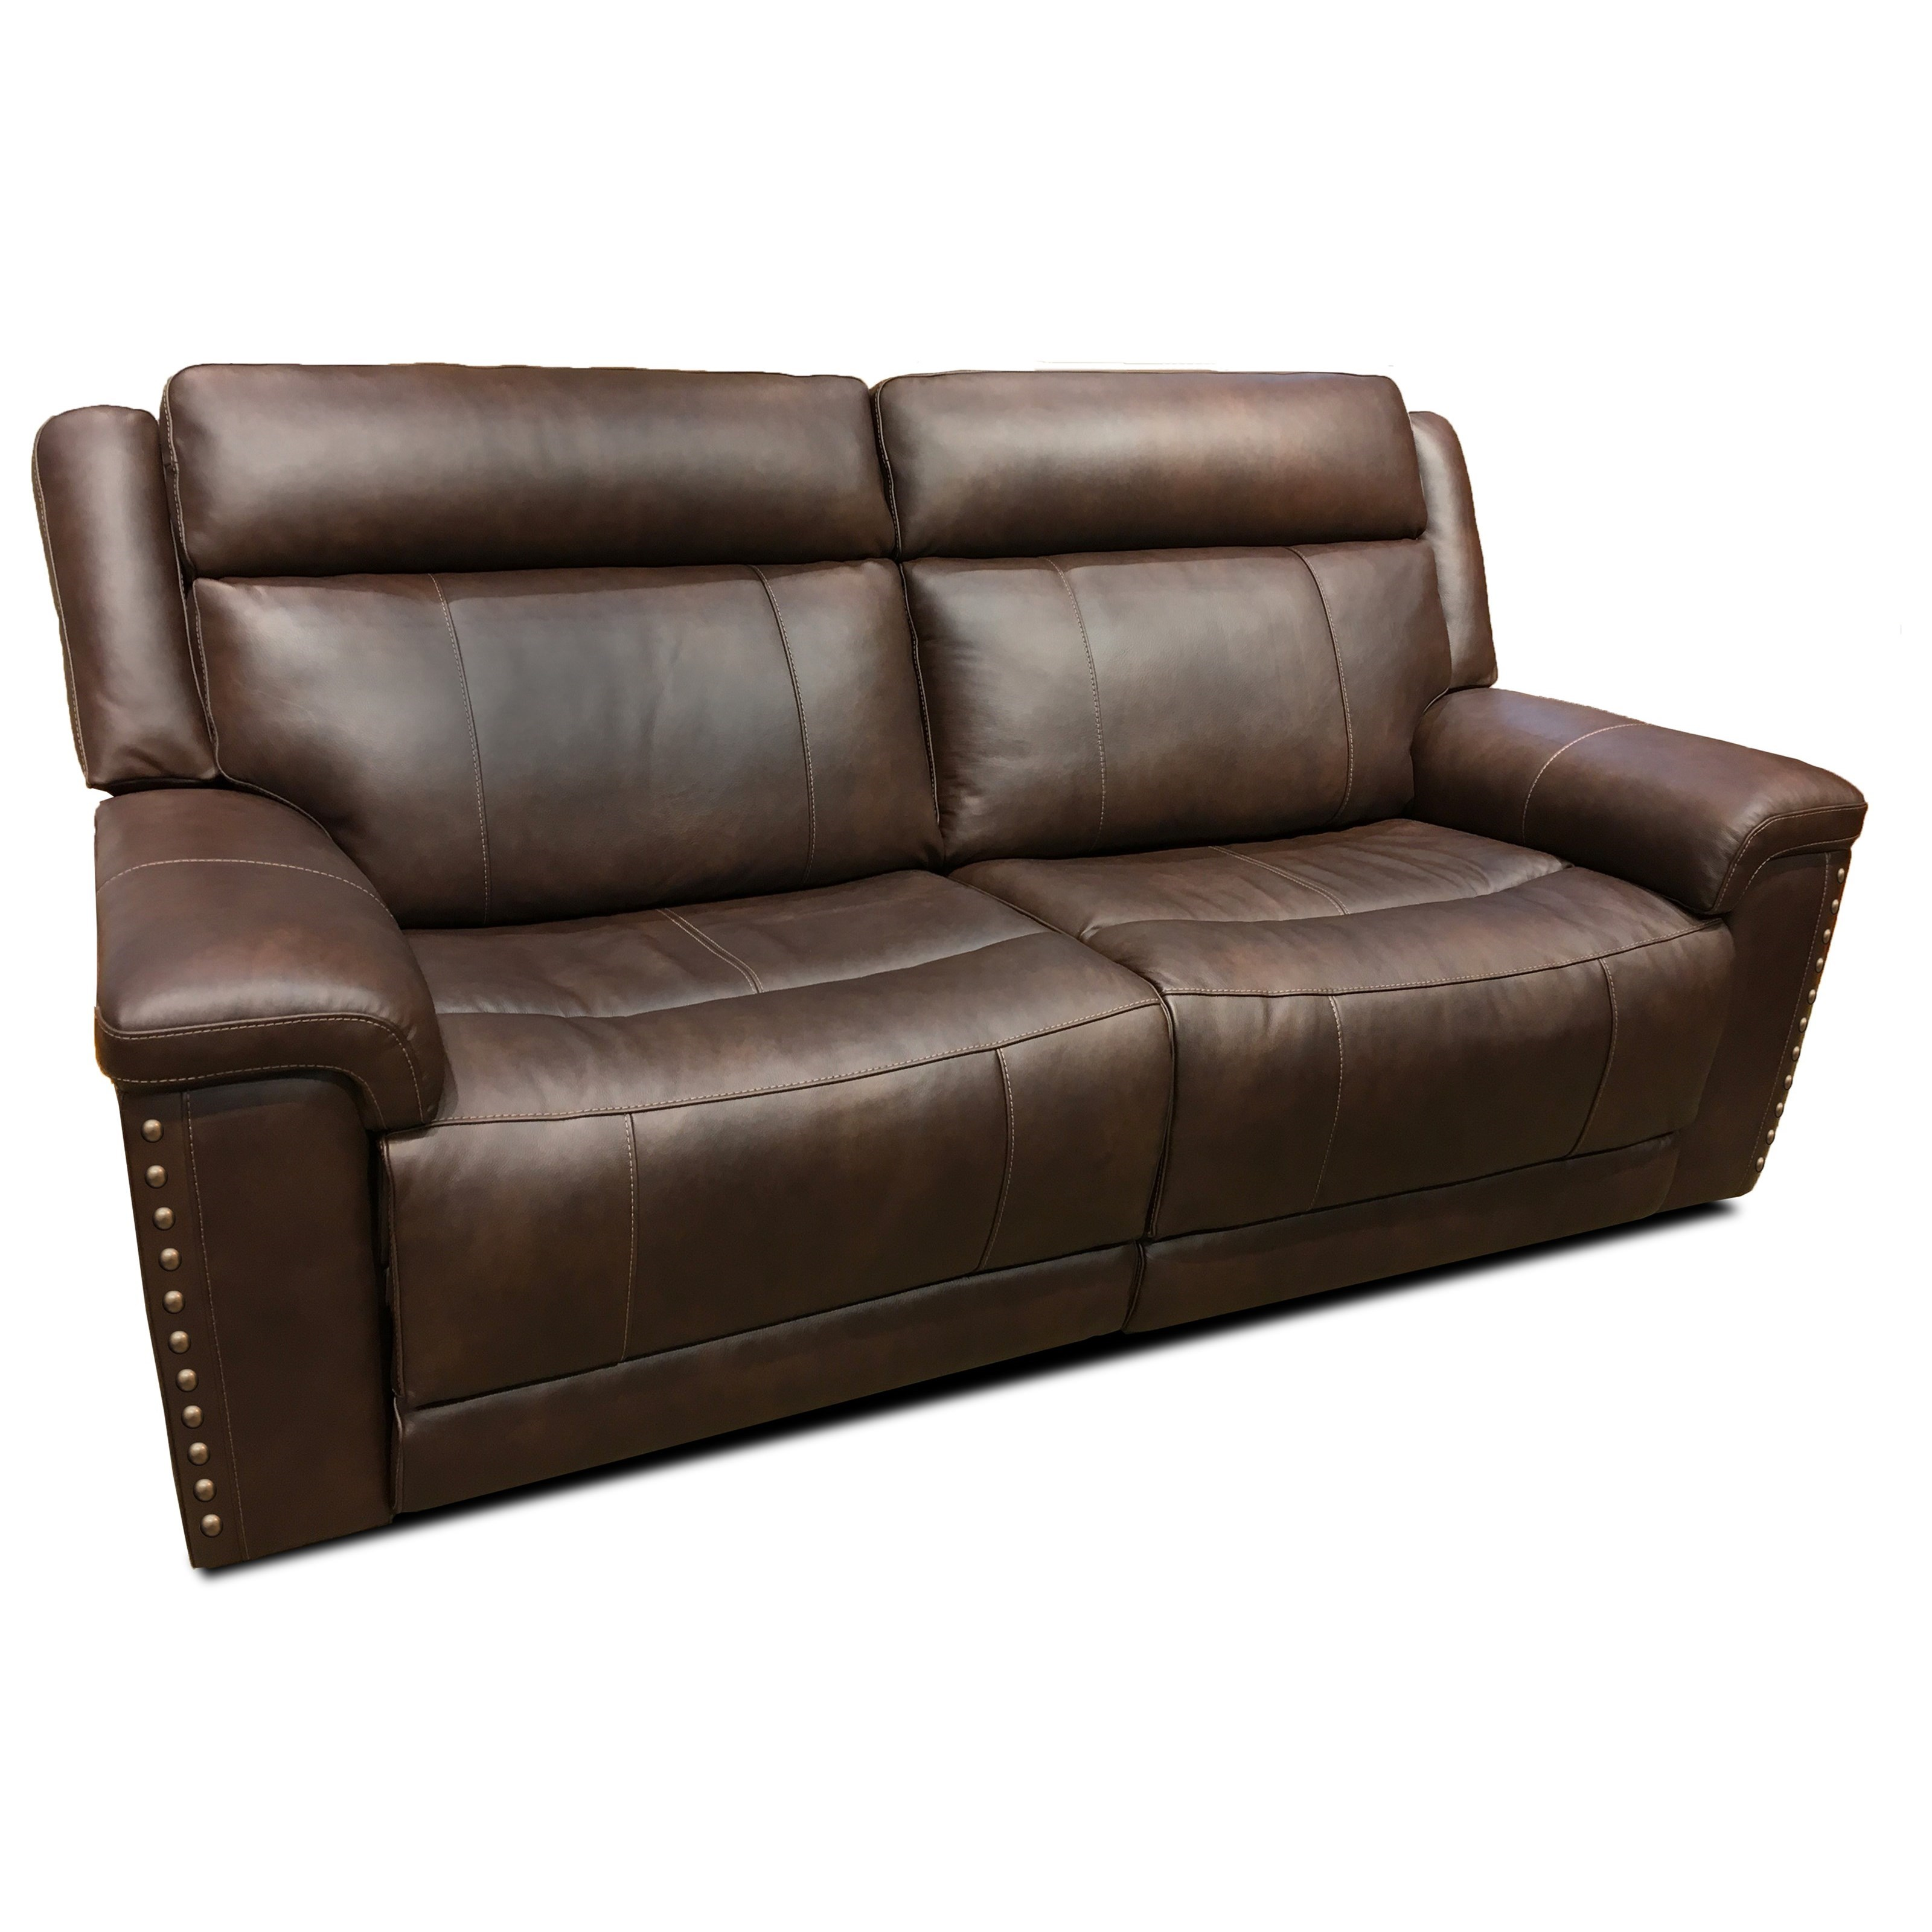 Latitudes - Yuma Pwr Rcl Sofa w/ Pwr Hdrst by Flexsteel at Walker's Furniture